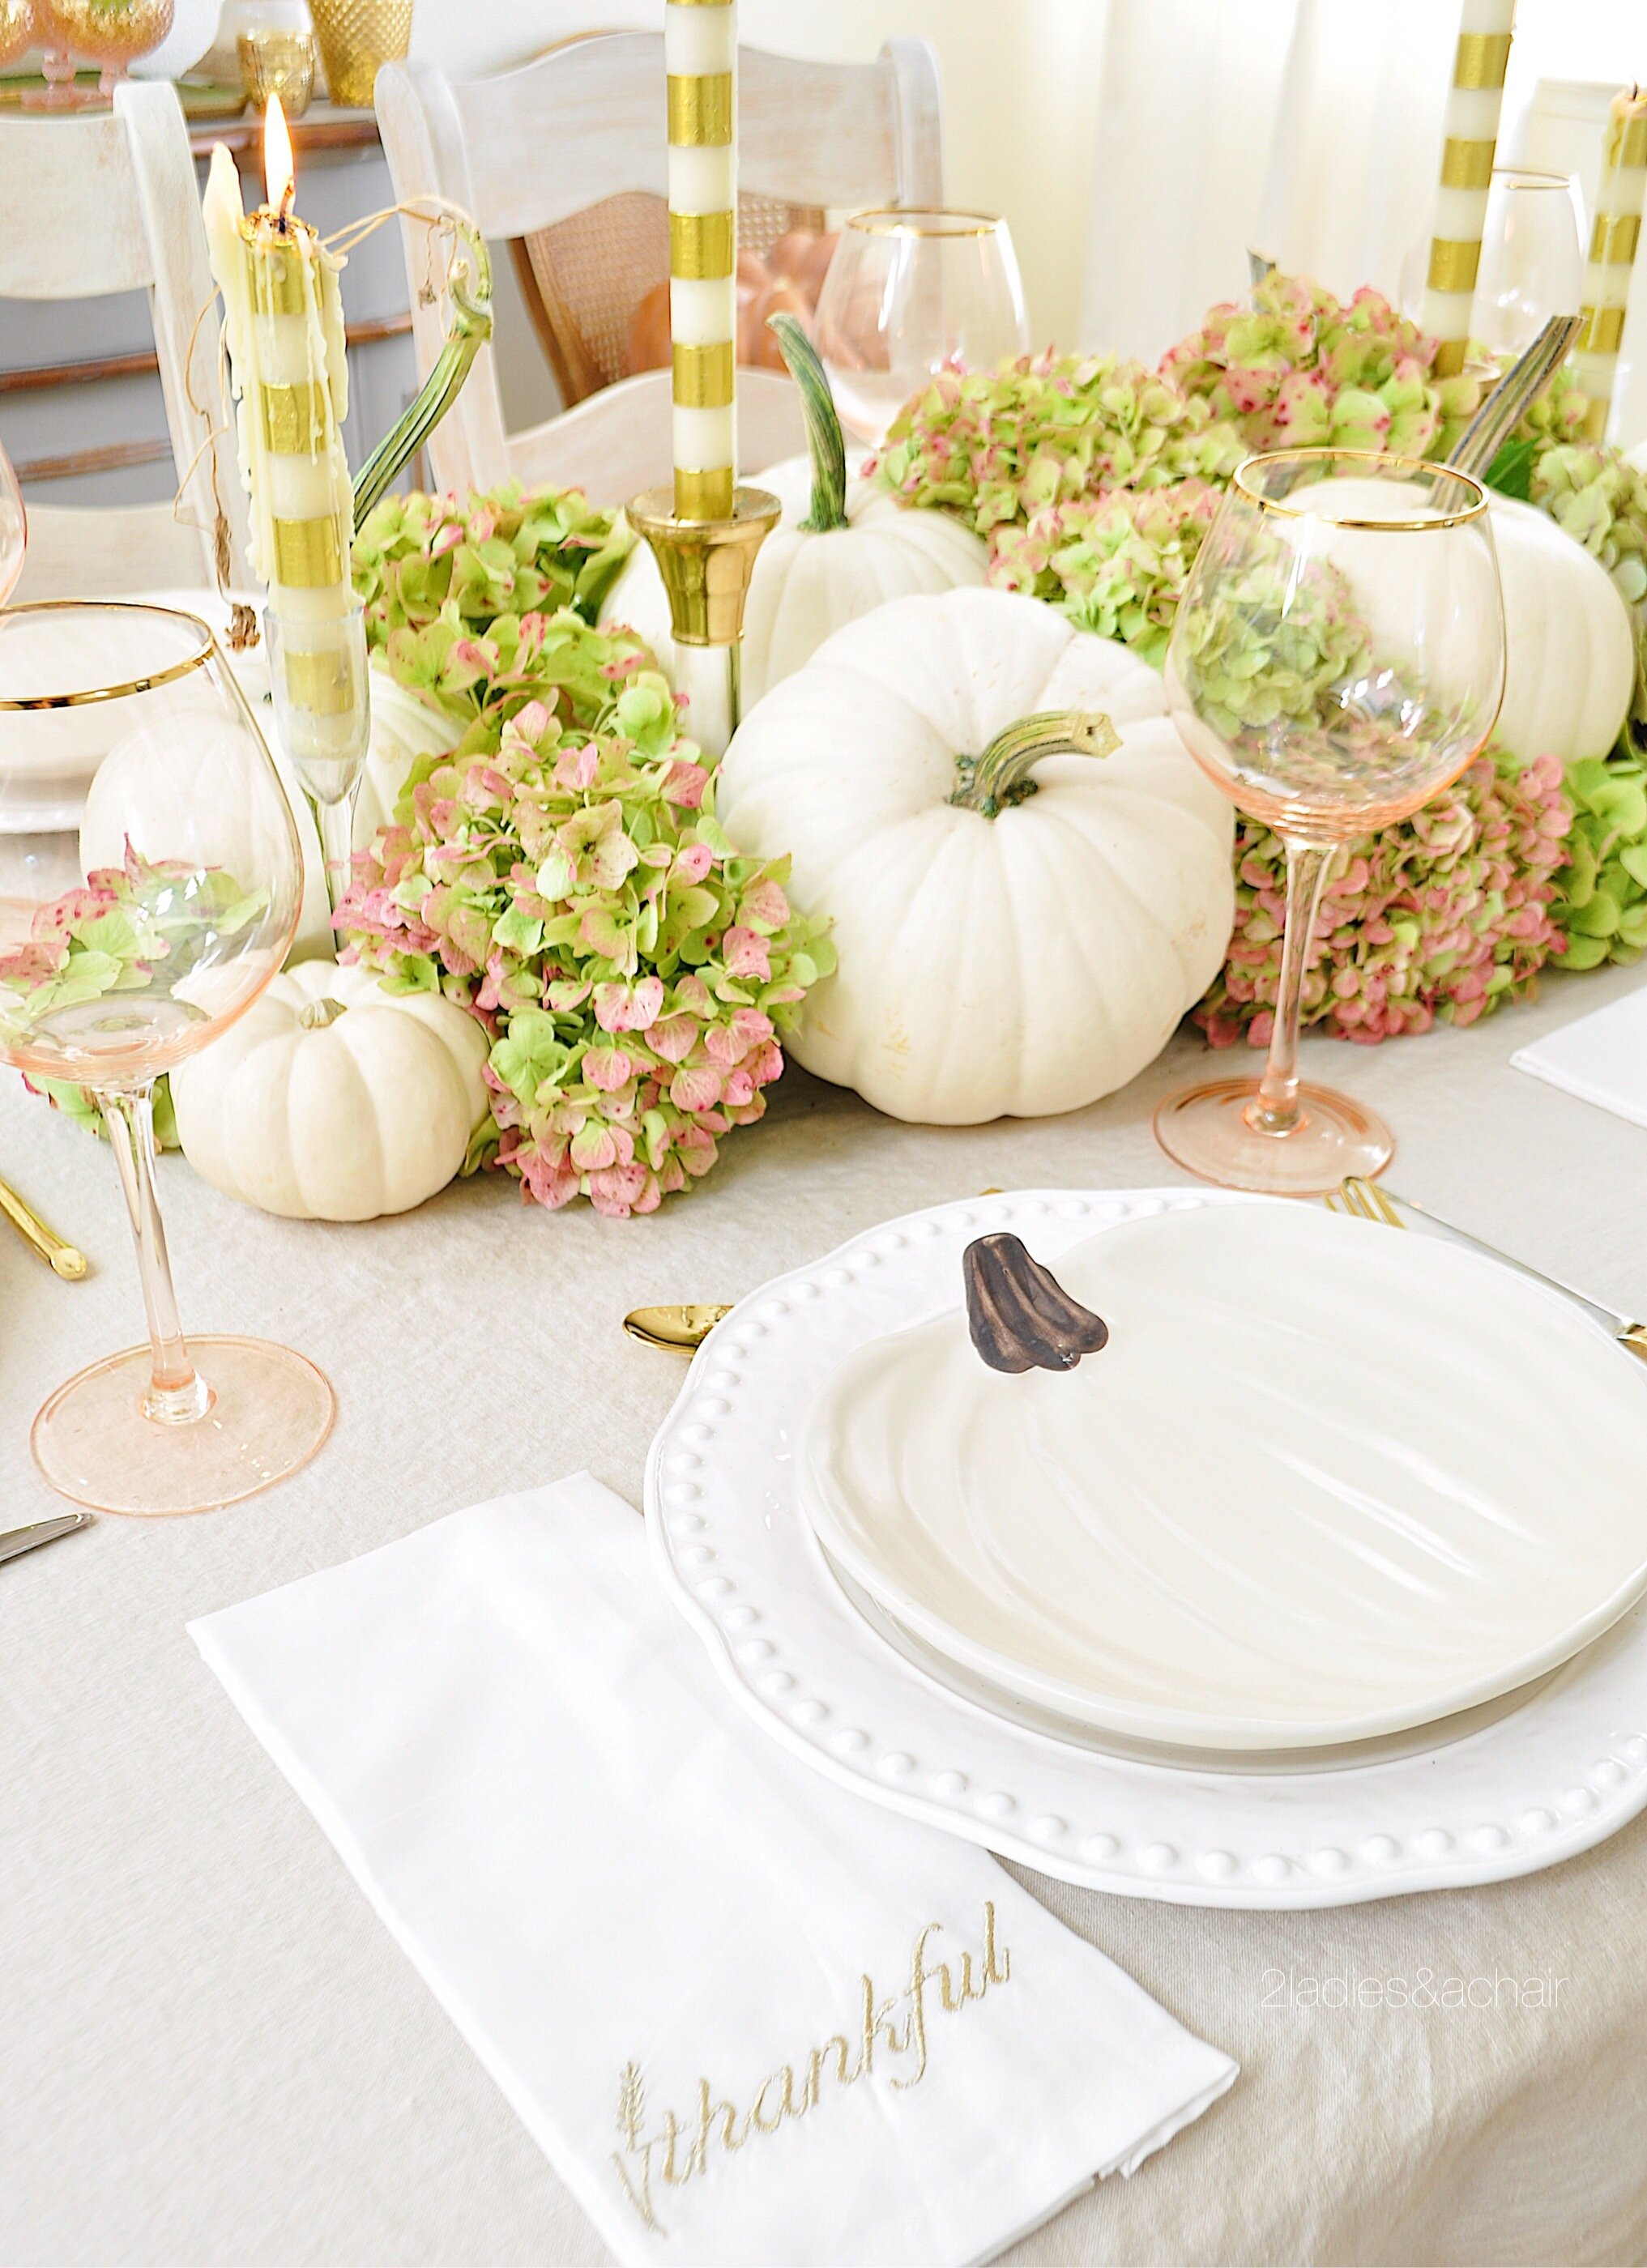 thanksgiving table IMG_1476.JPG